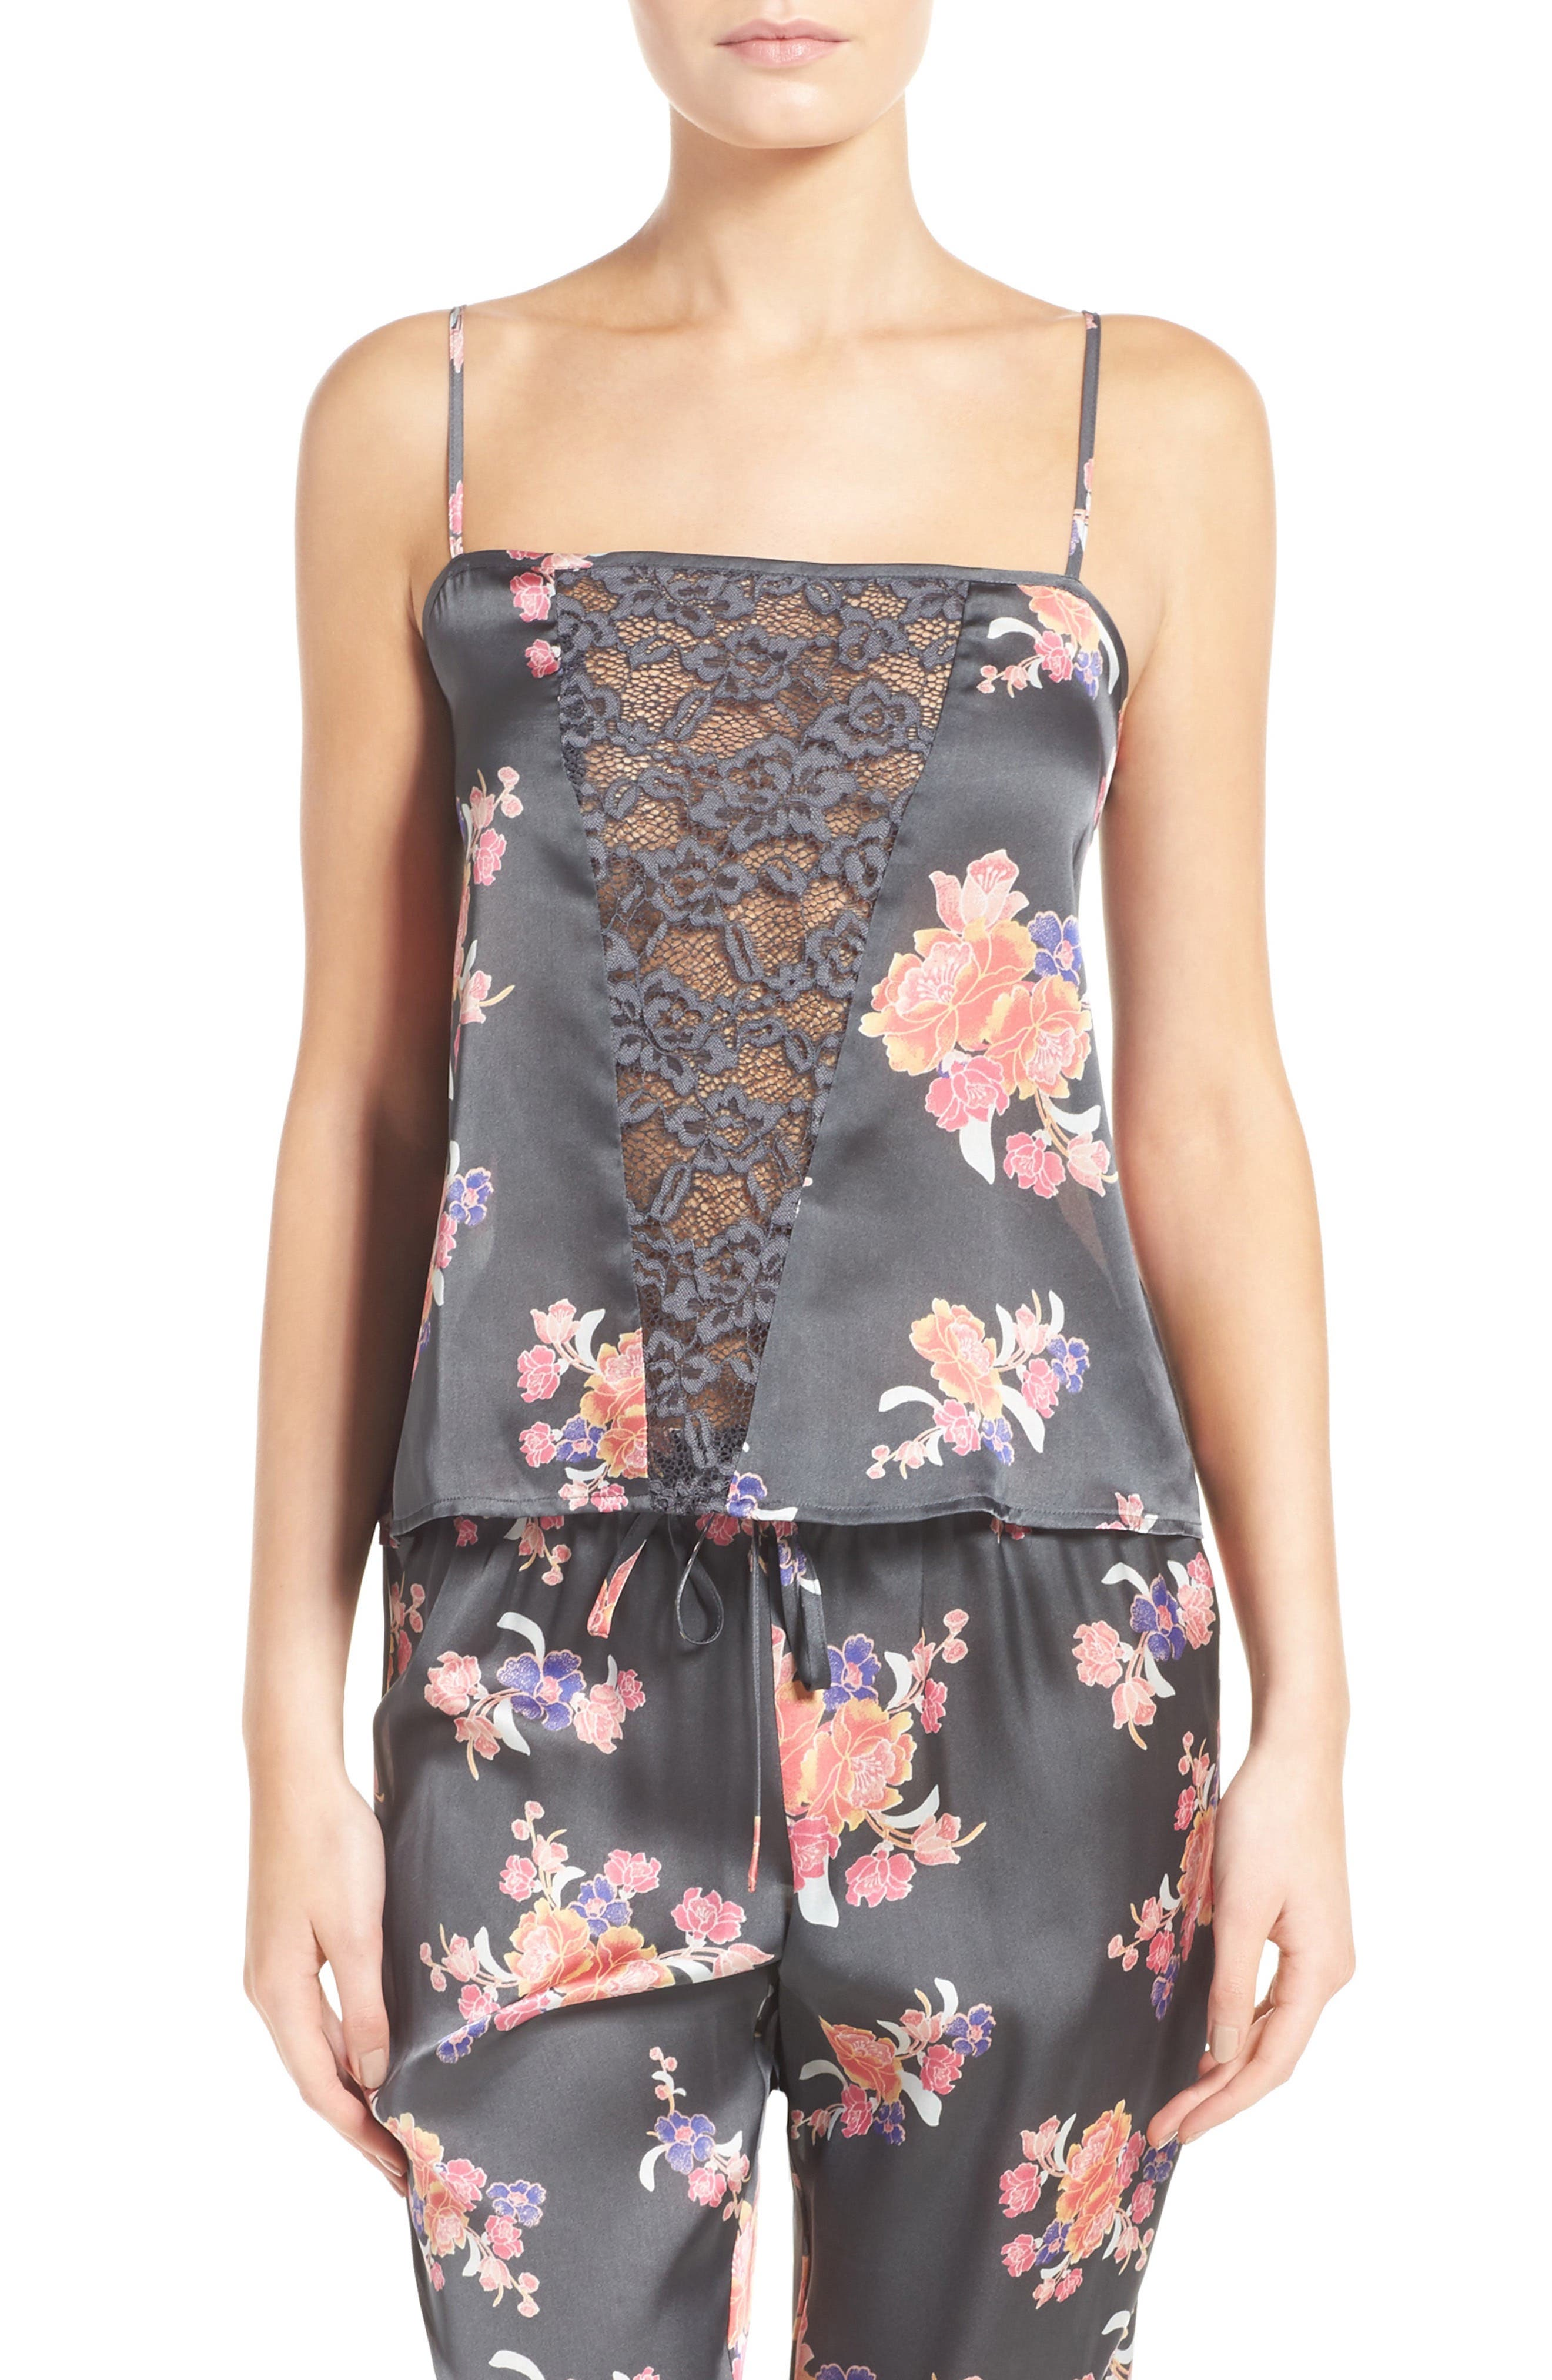 Main Image - Chelsea28 All You Need Lounge Camisole